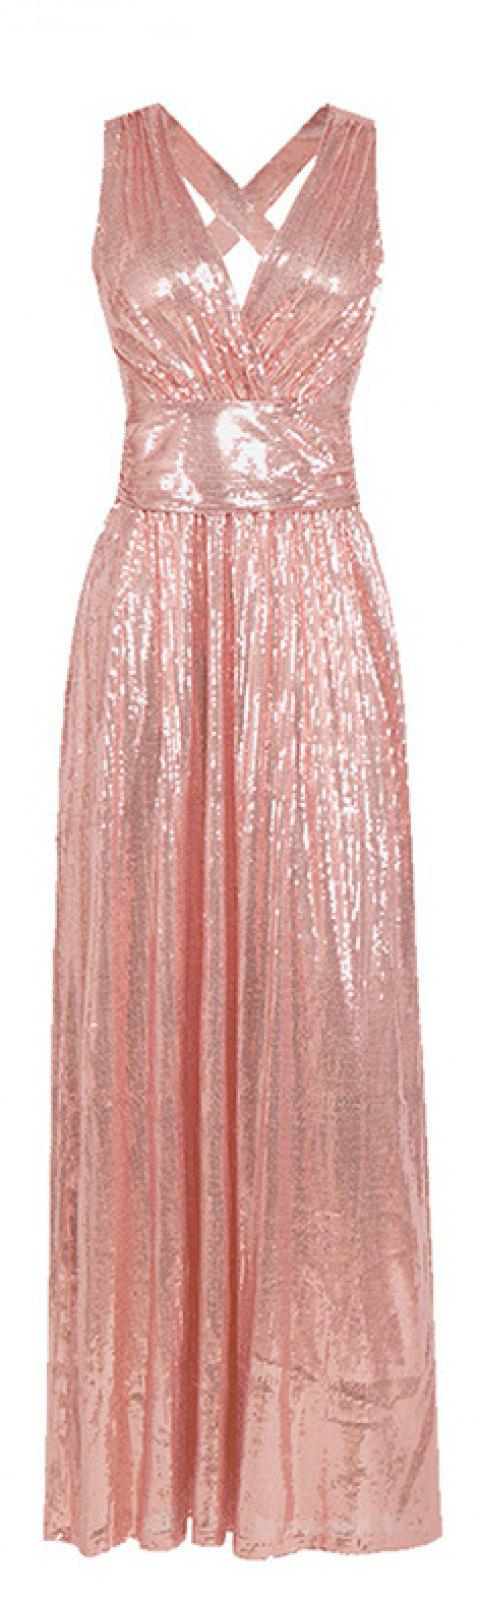 Sexy Beauty Evening Dress - FLAMINGO PINK L